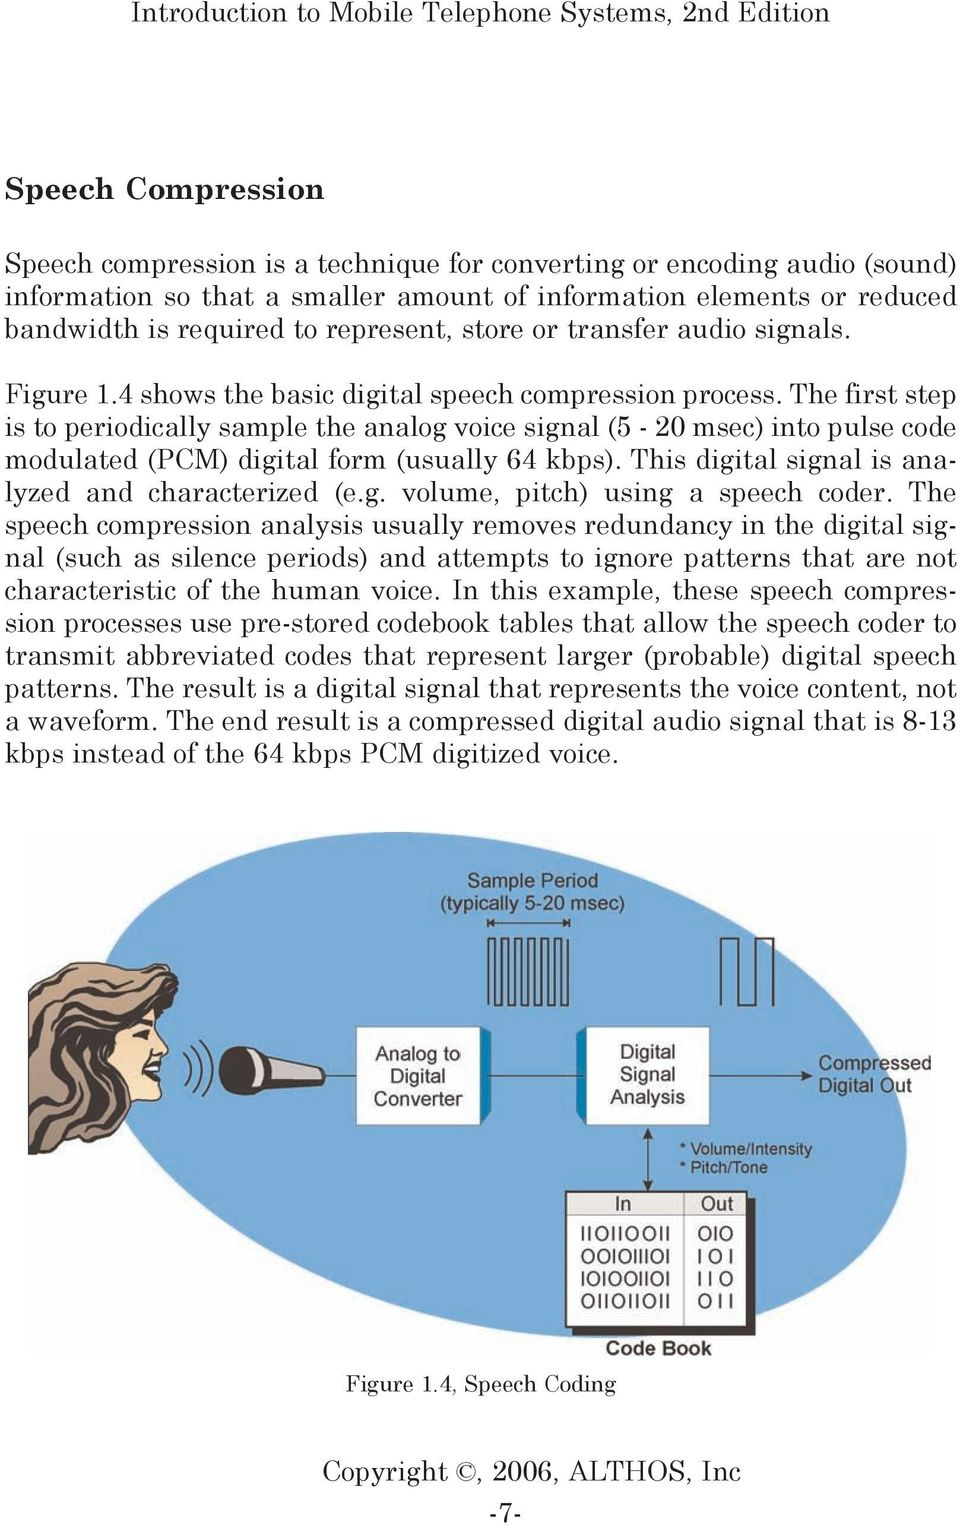 The first step is to periodically sample the analog voice signal (5-20 msec) into pulse code modulated (PCM) digital form (usually 64 kbps). This digital signal is analyzed and characterized (e.g. volume, pitch) using a speech coder.